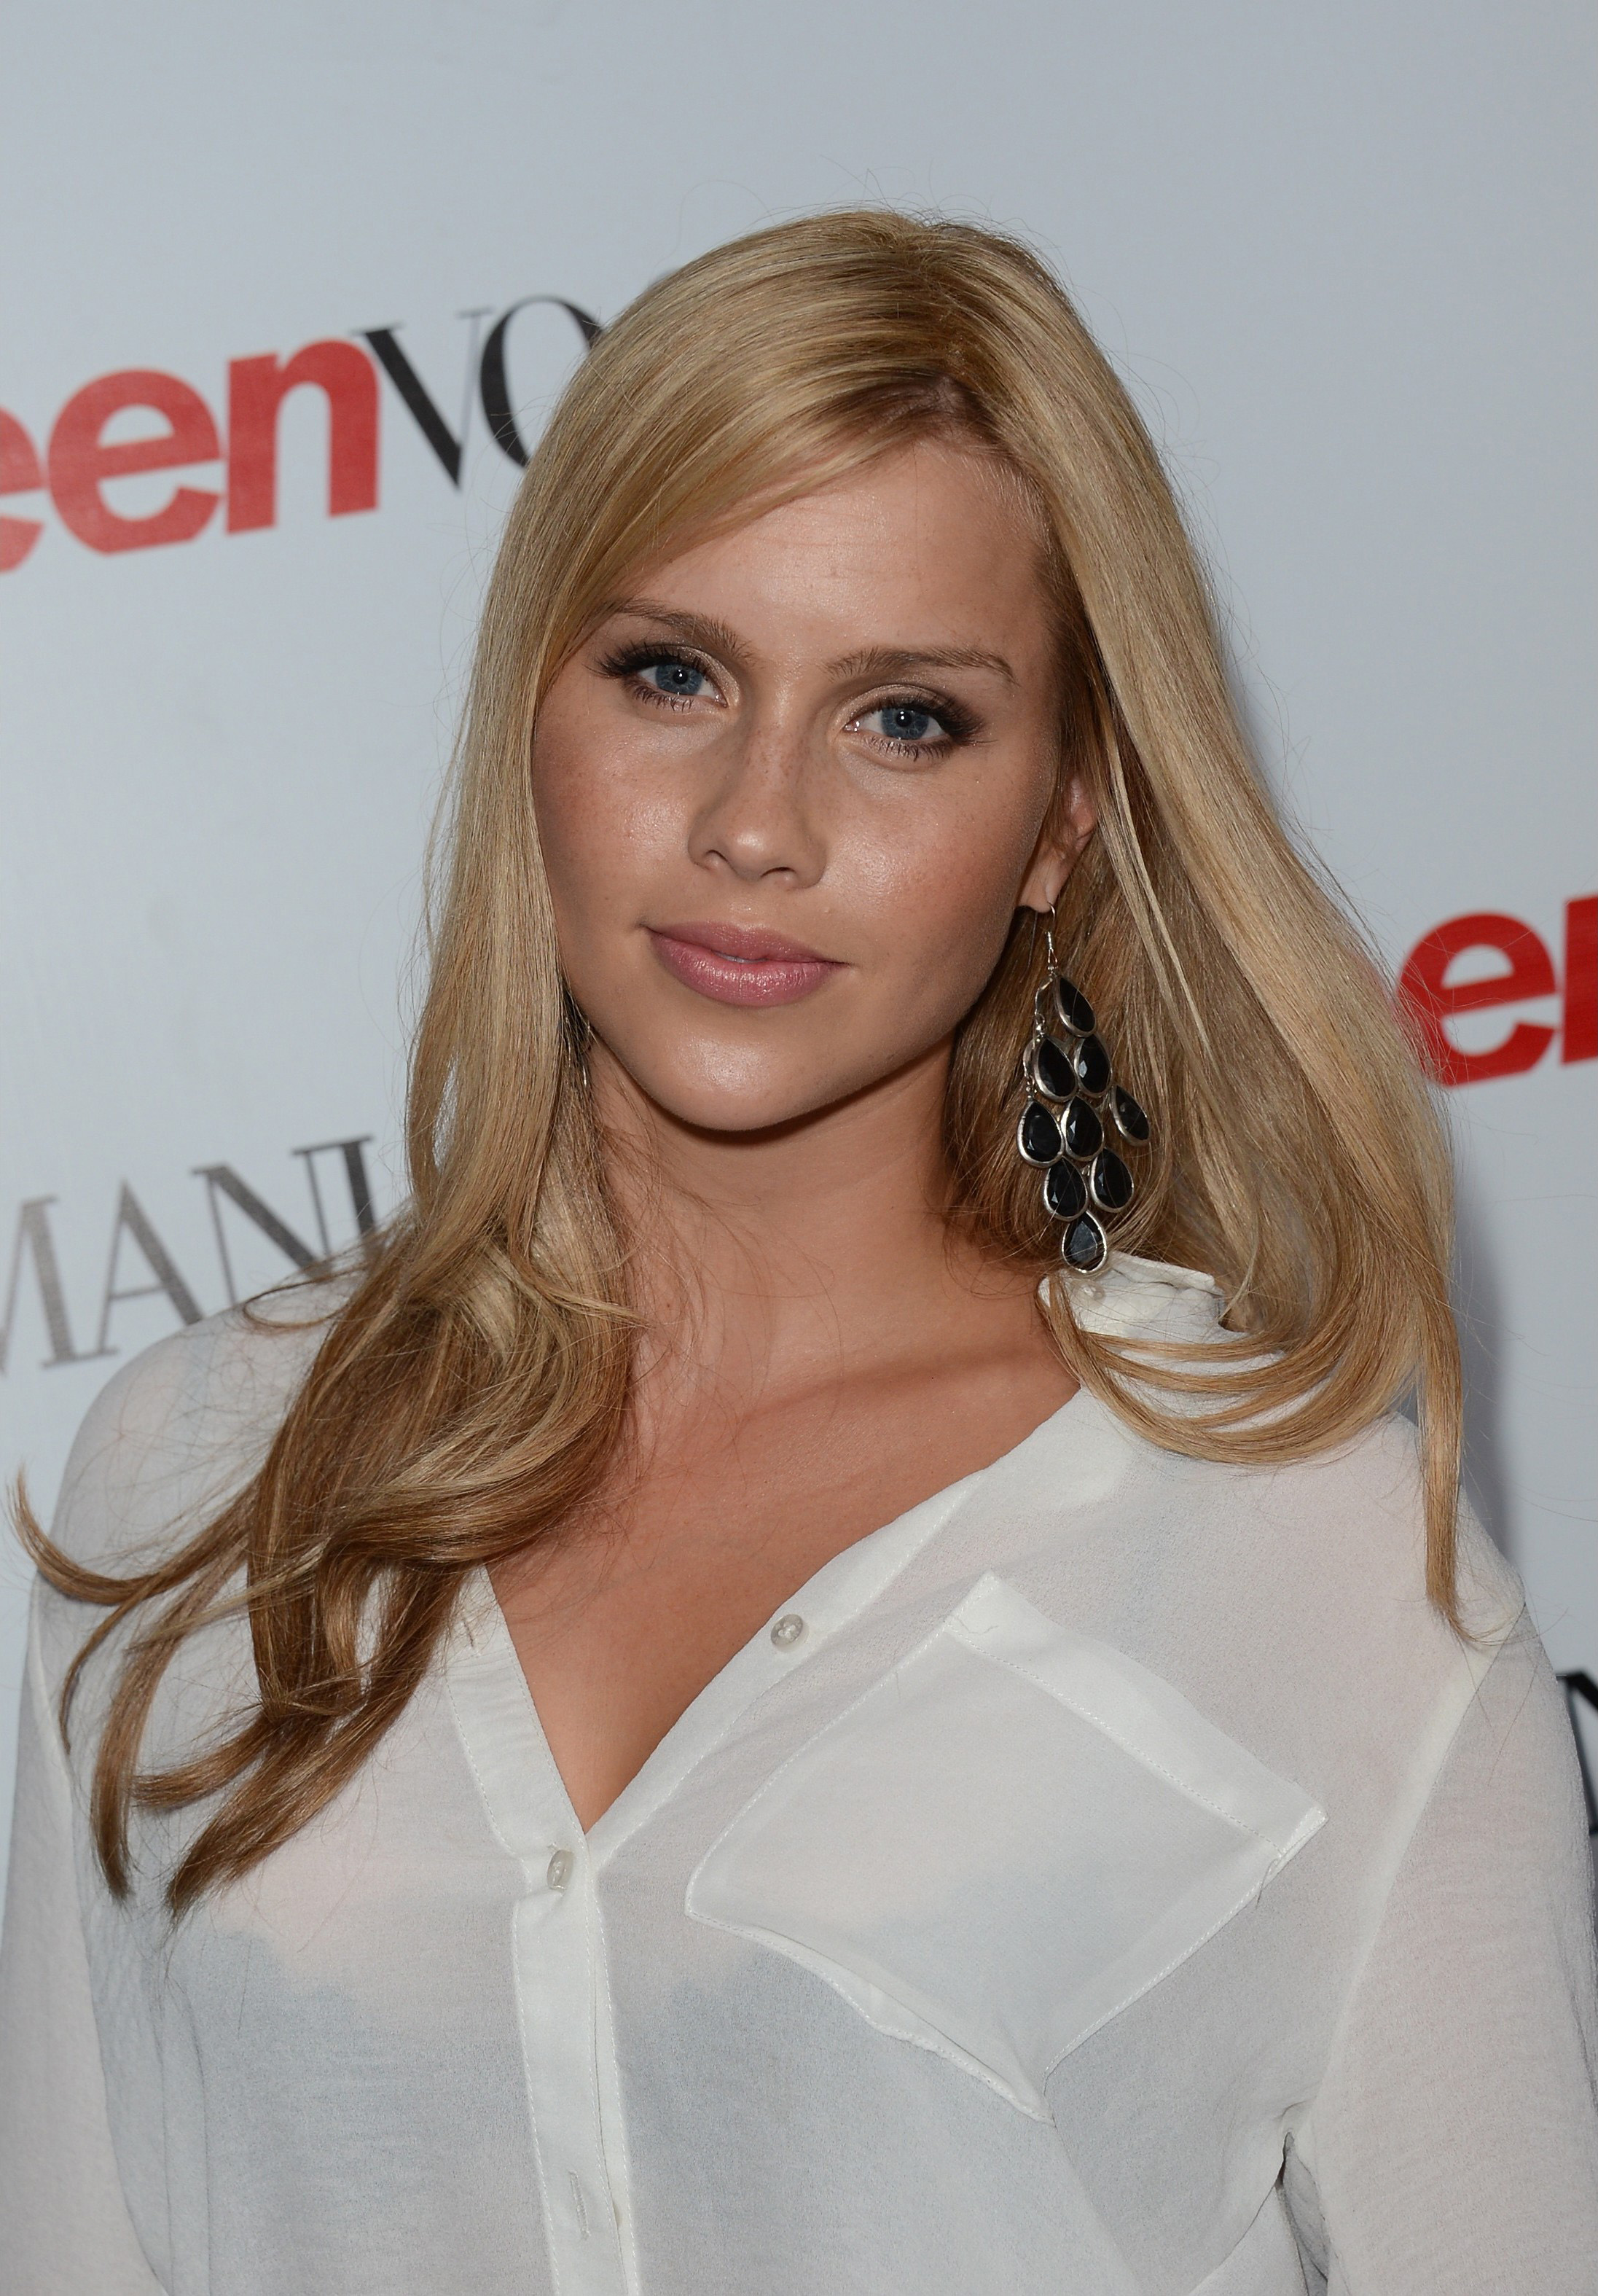 The 28-year old daughter of father (?) and mother(?), 170 cm tall Claire Holt in 2017 photo